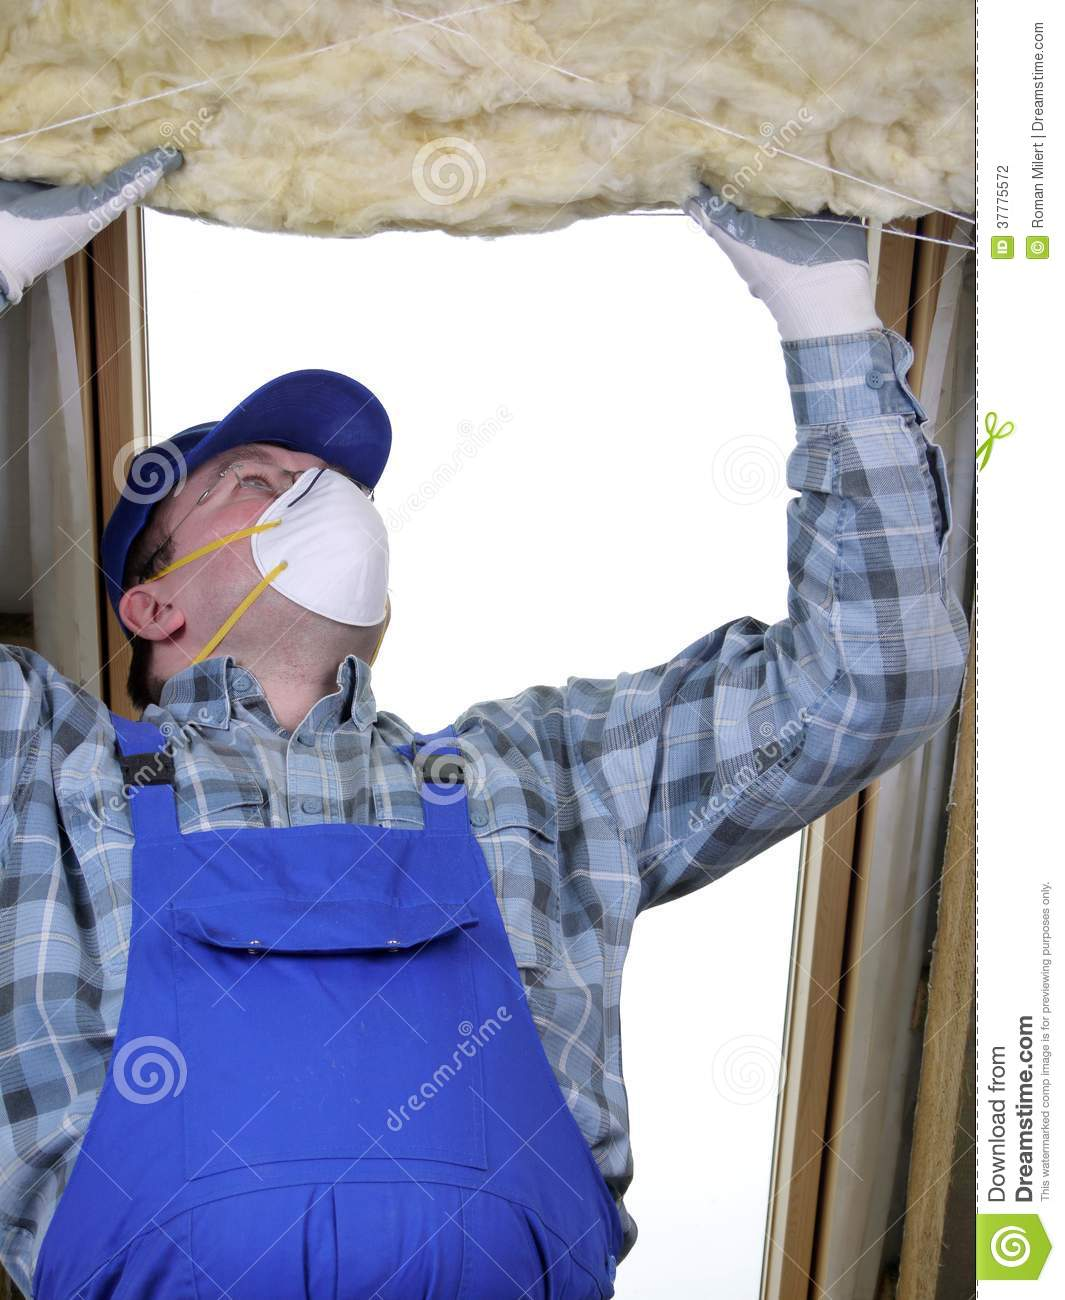 Attic thermal insulation stock photography image 37775572 - Attic thermal insulation ...